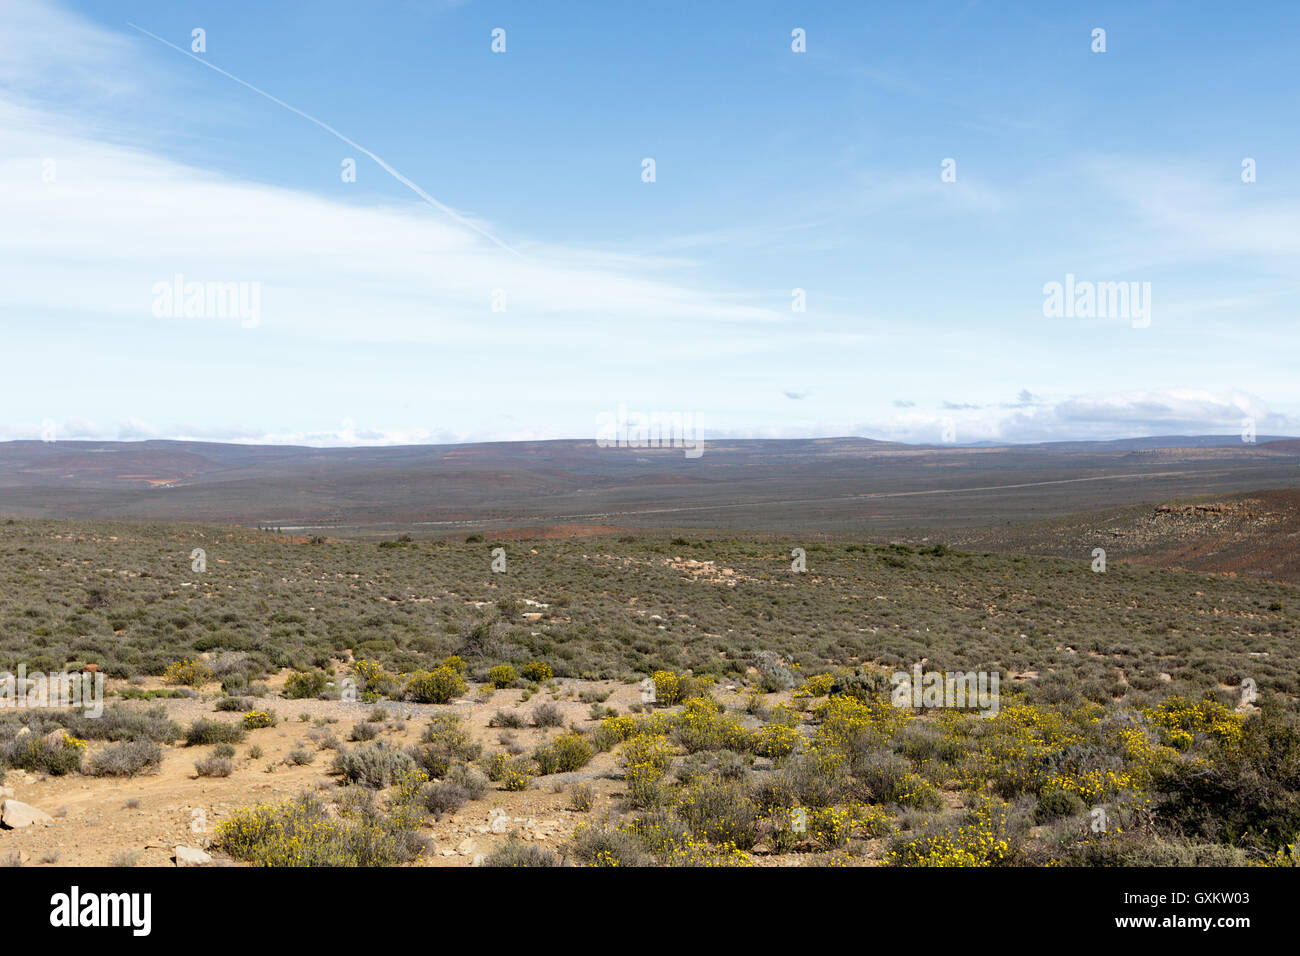 Just Empty - Sutherland is a town with about 2,841 inhabitants in the Northern Cape province of South Africa. It - Stock Image